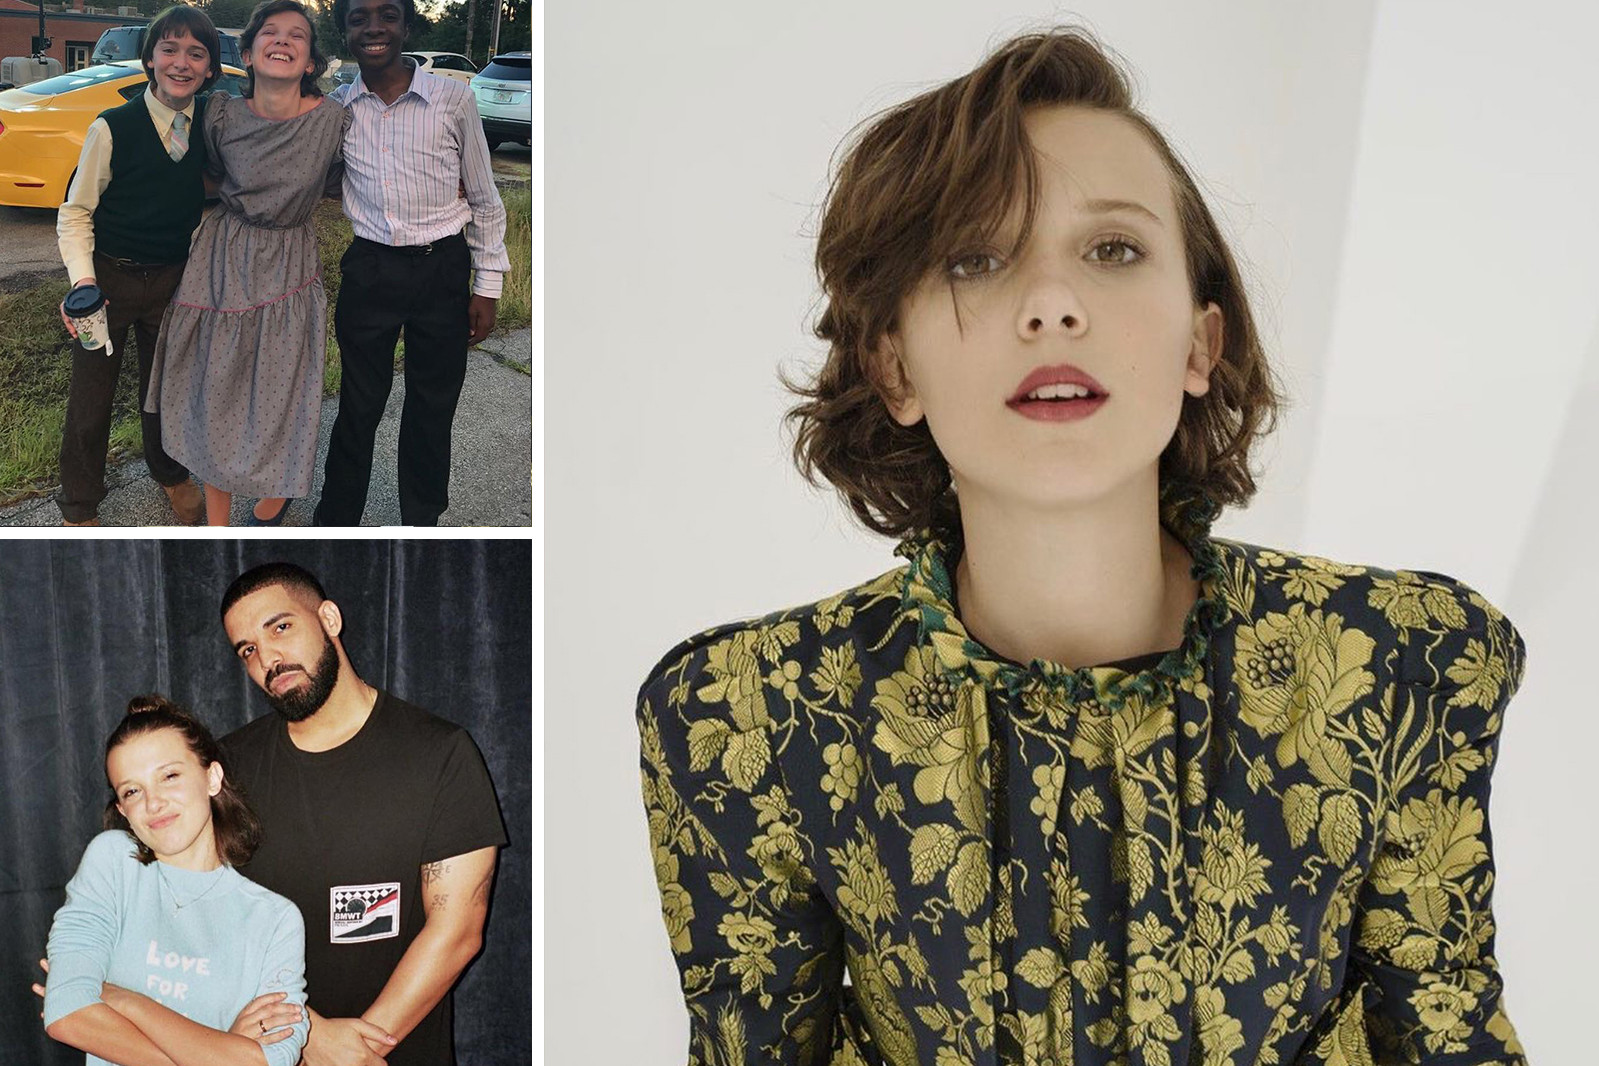 Instagram Influential Teenagers Millie Bobby Brown Amandla Stenberg Willow Smith Maddie Ziegler Noah Cyrus Music Entertainment Fashion